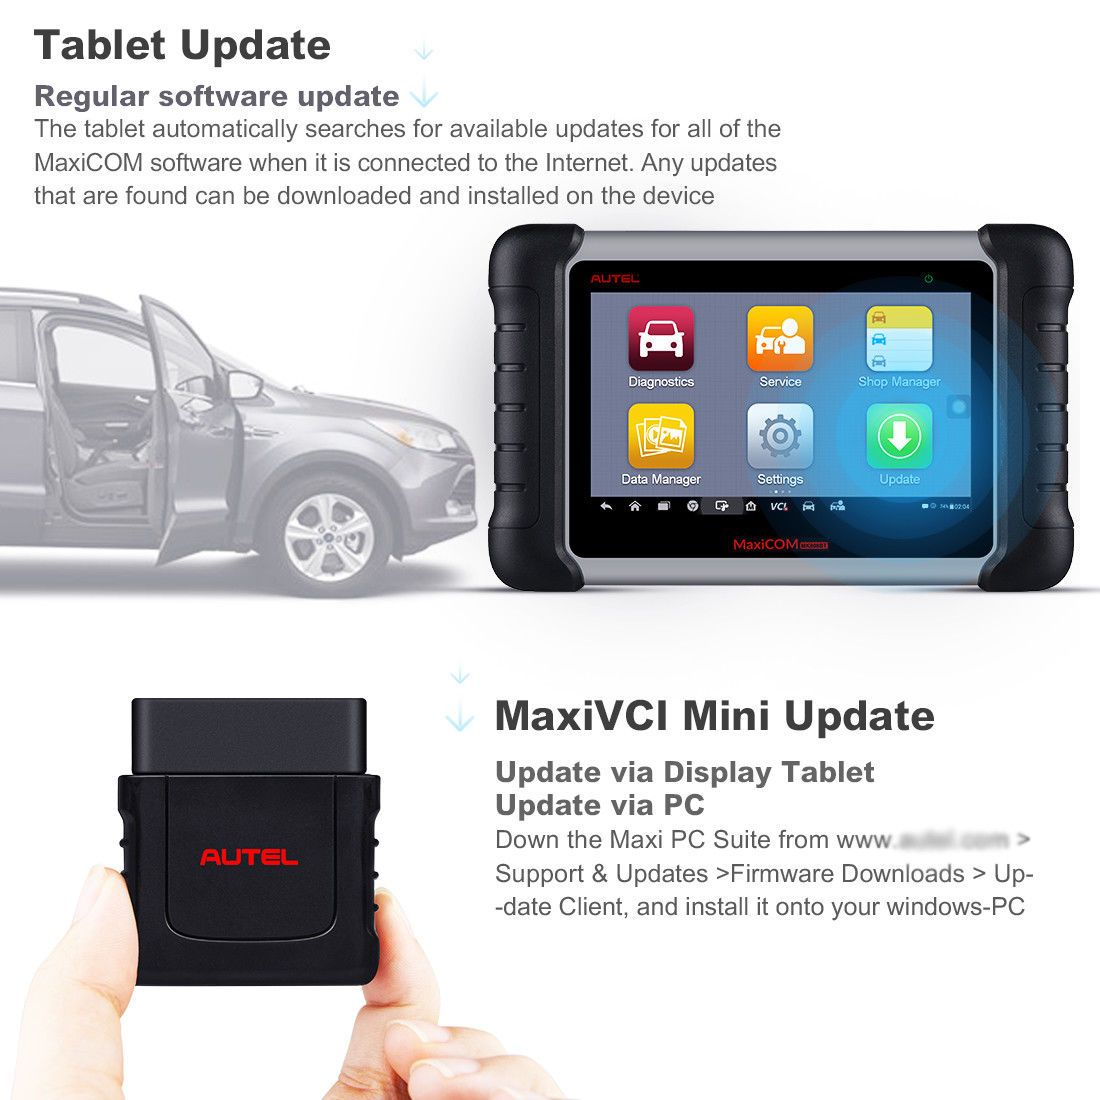 Autel MK808BT Support Wi-Fi Update